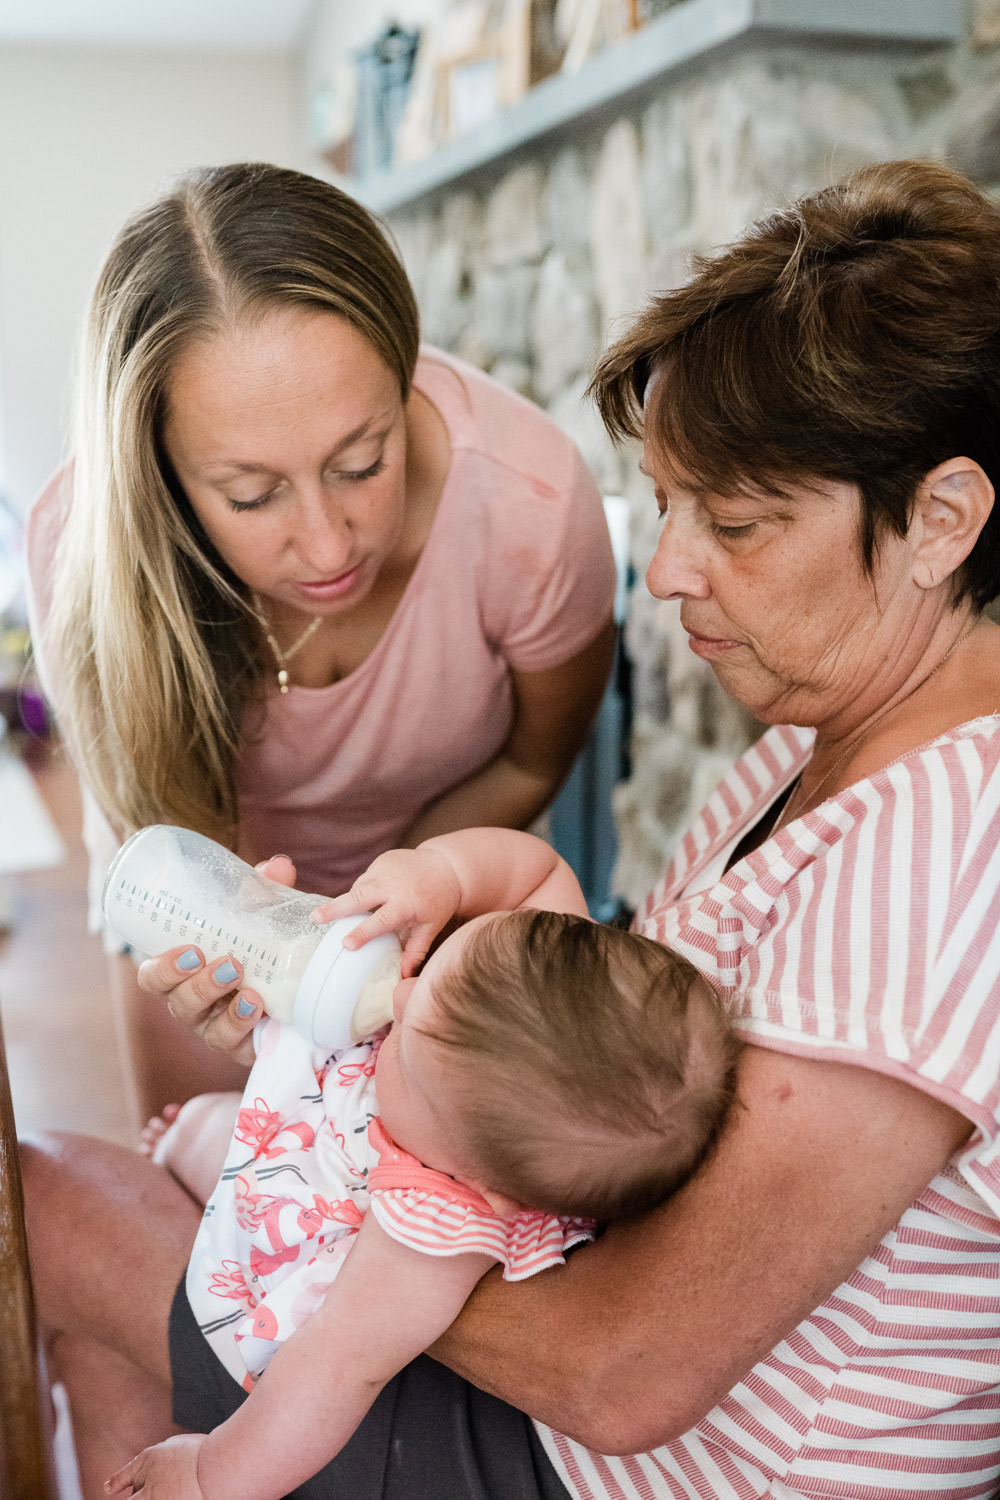 A mother and grandmother feed a baby.